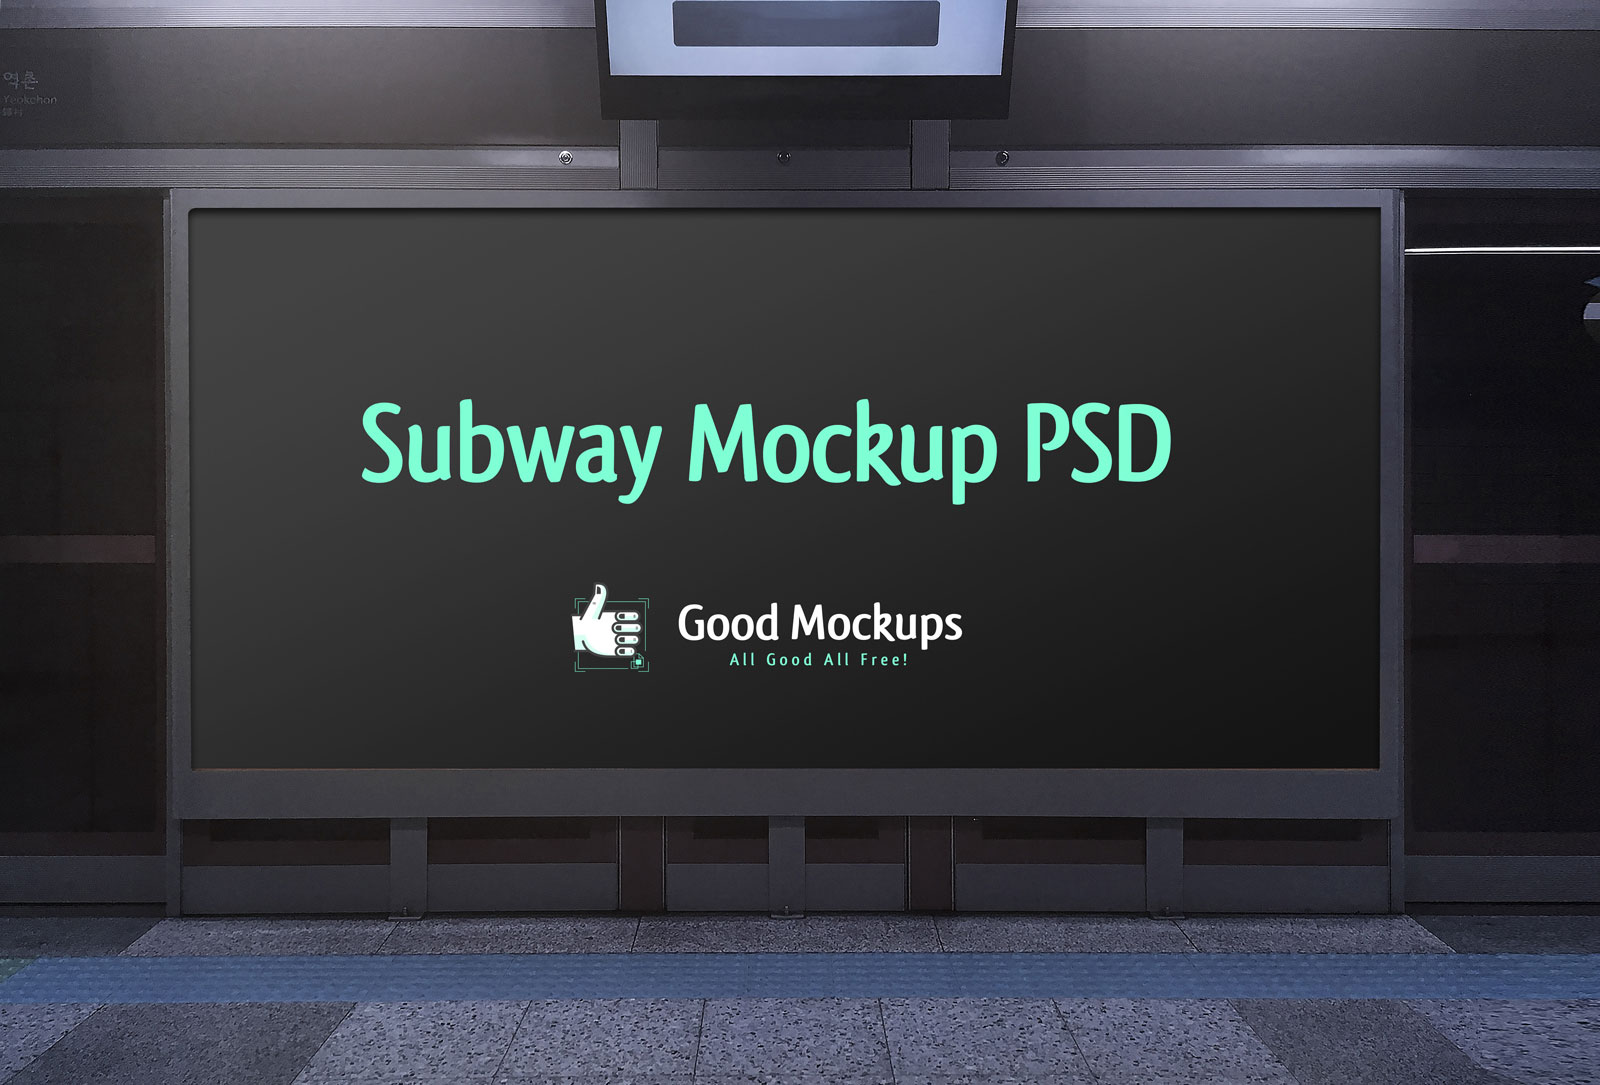 Free-Outdoor-Advertising-Subway-Hoarding-Mockup-PSD-File